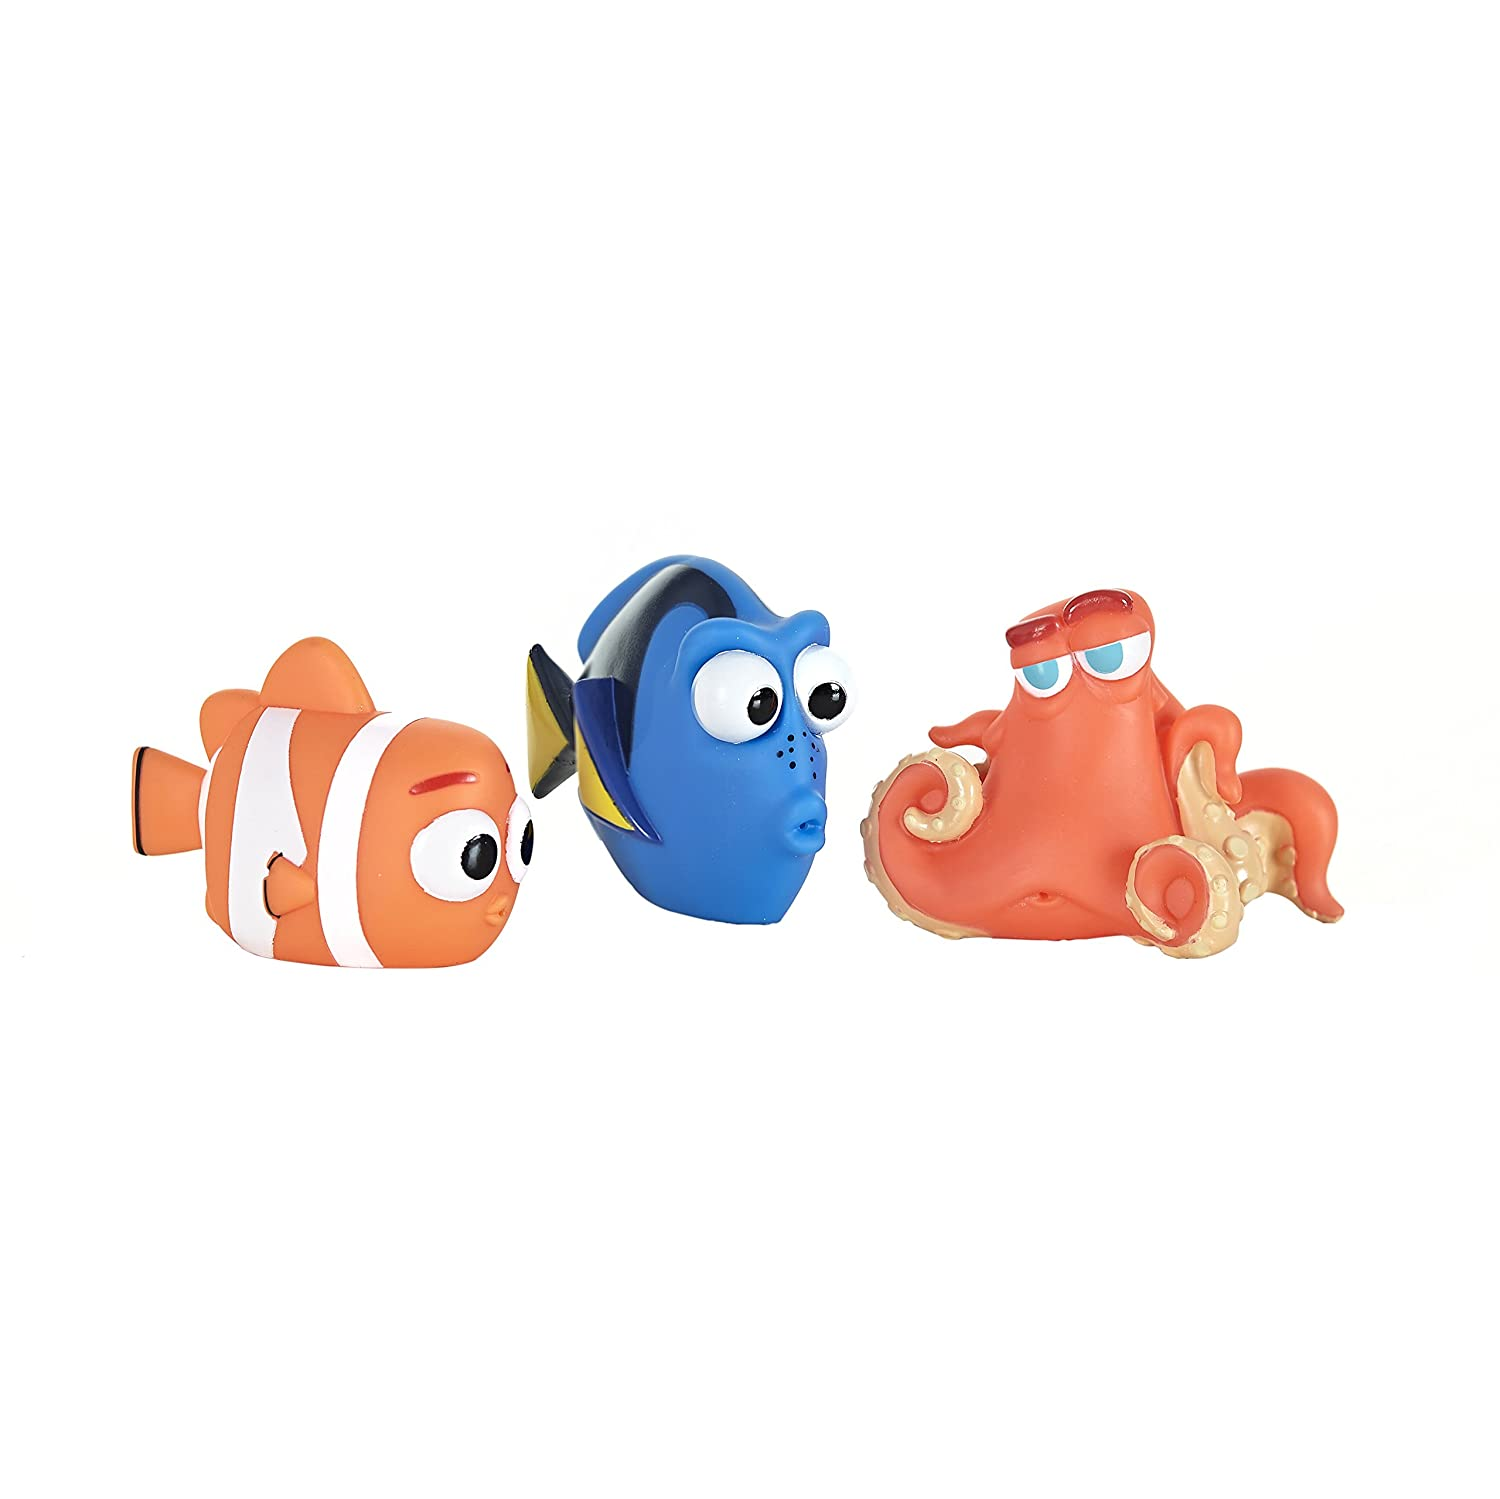 Zoggs Kids Finding Dory Little Squirts Water Game with Dory Nemo and Hank - Multi-coloured, Above 3 Years 382205